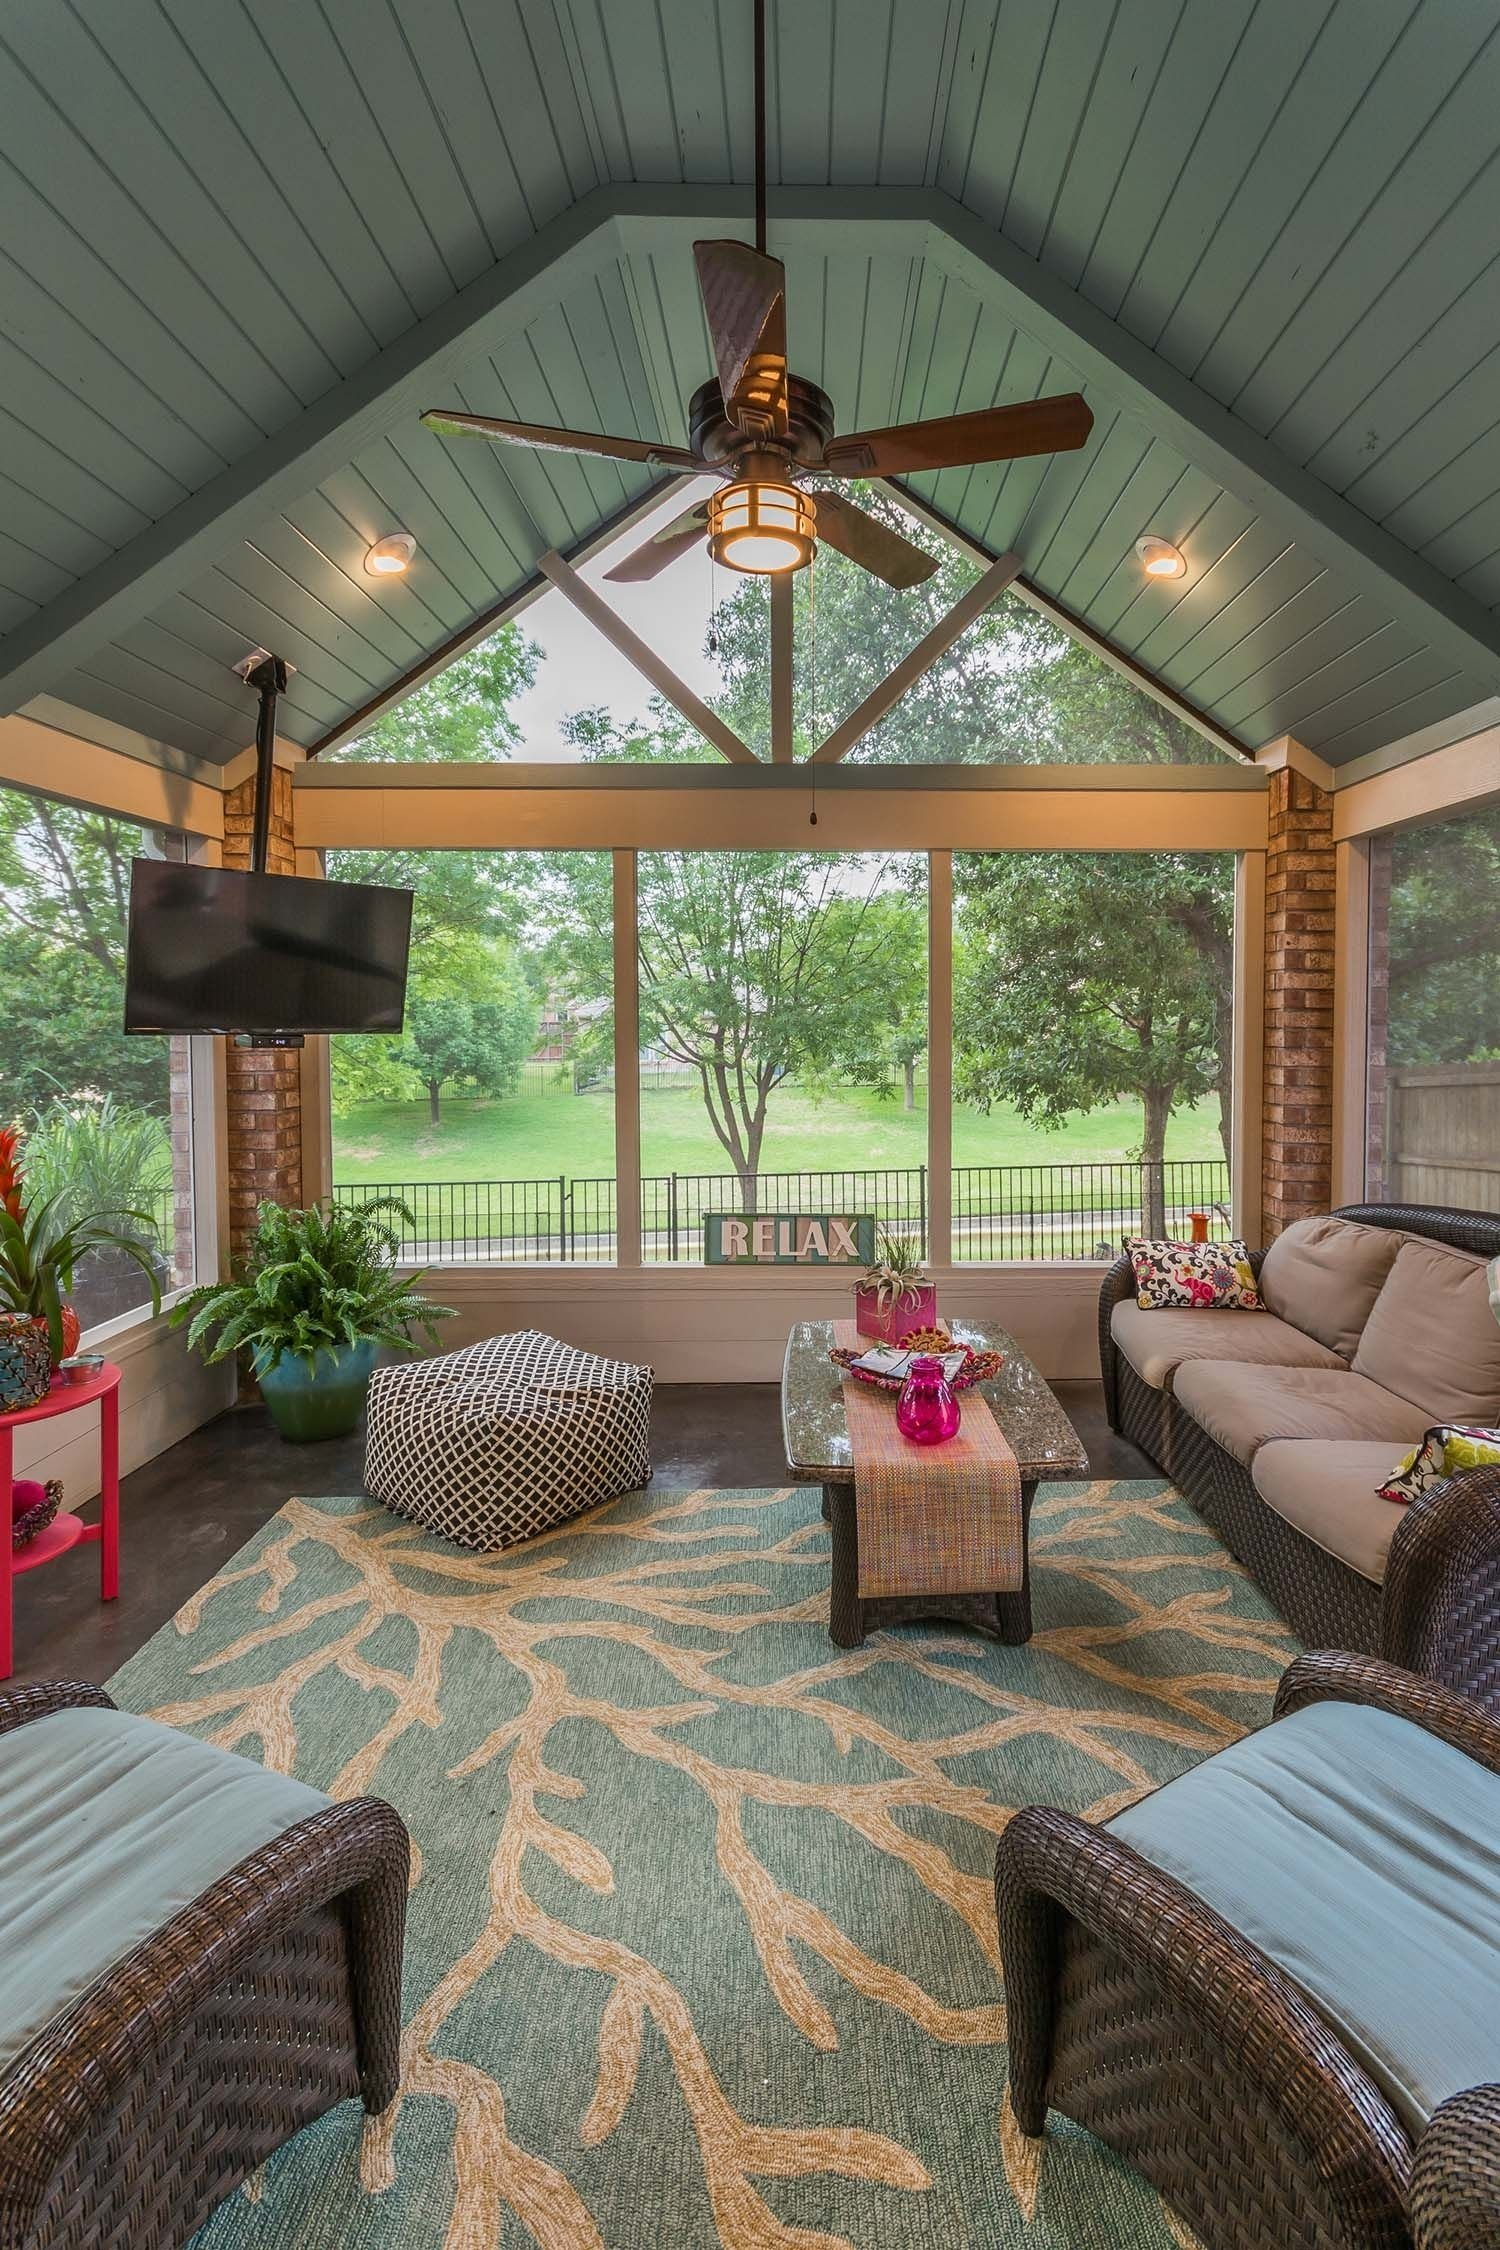 10 Trendy Ideas For Screened In Porches 38 amazingly cozy and relaxing screened porch design ideas 2 2020